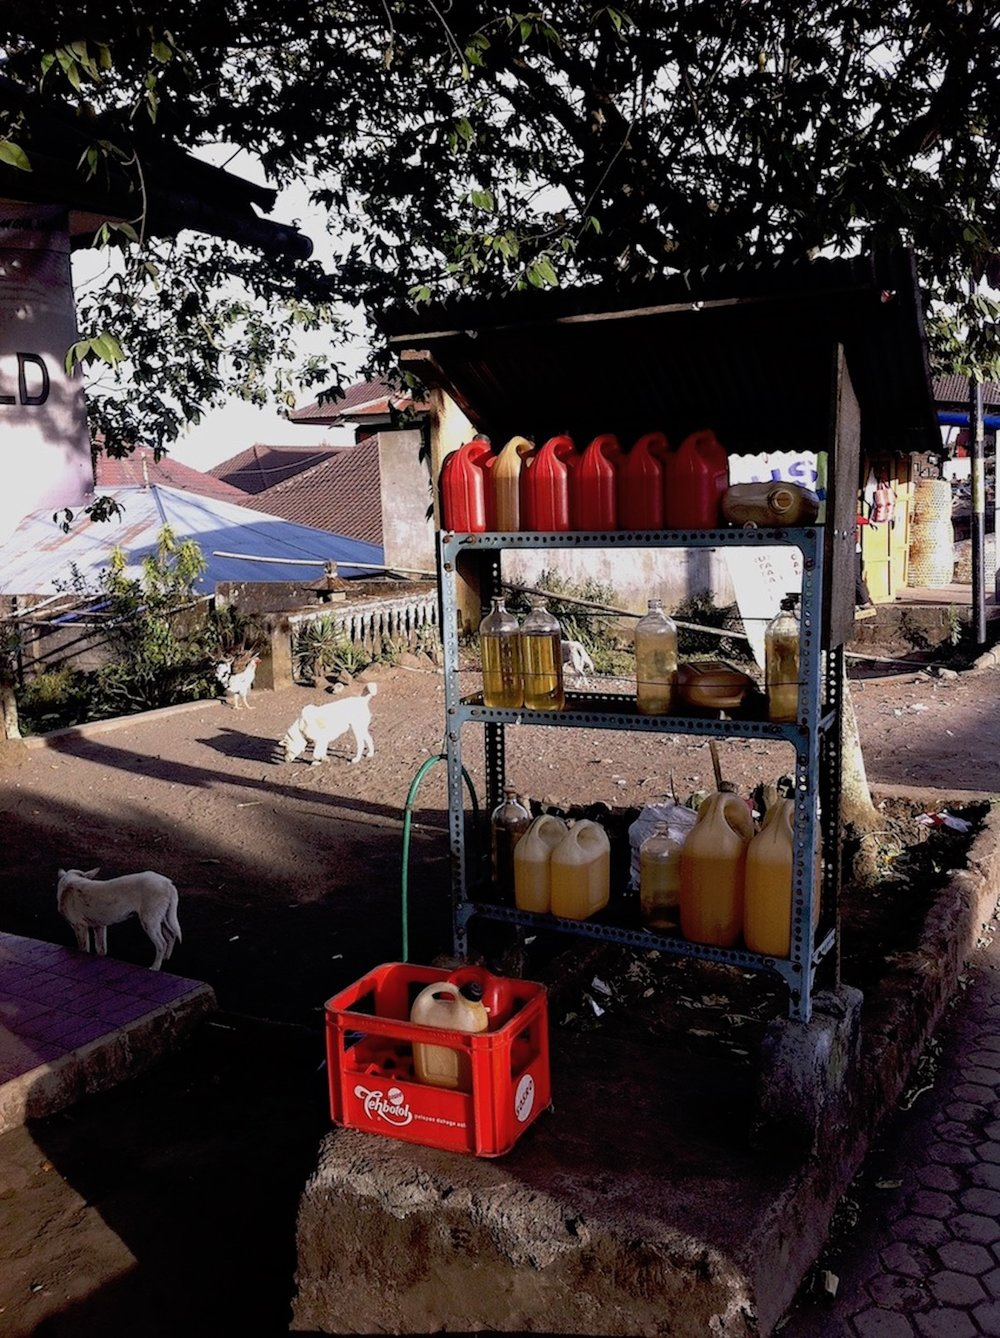 Gas station, Bali. Photo: Patti Neves